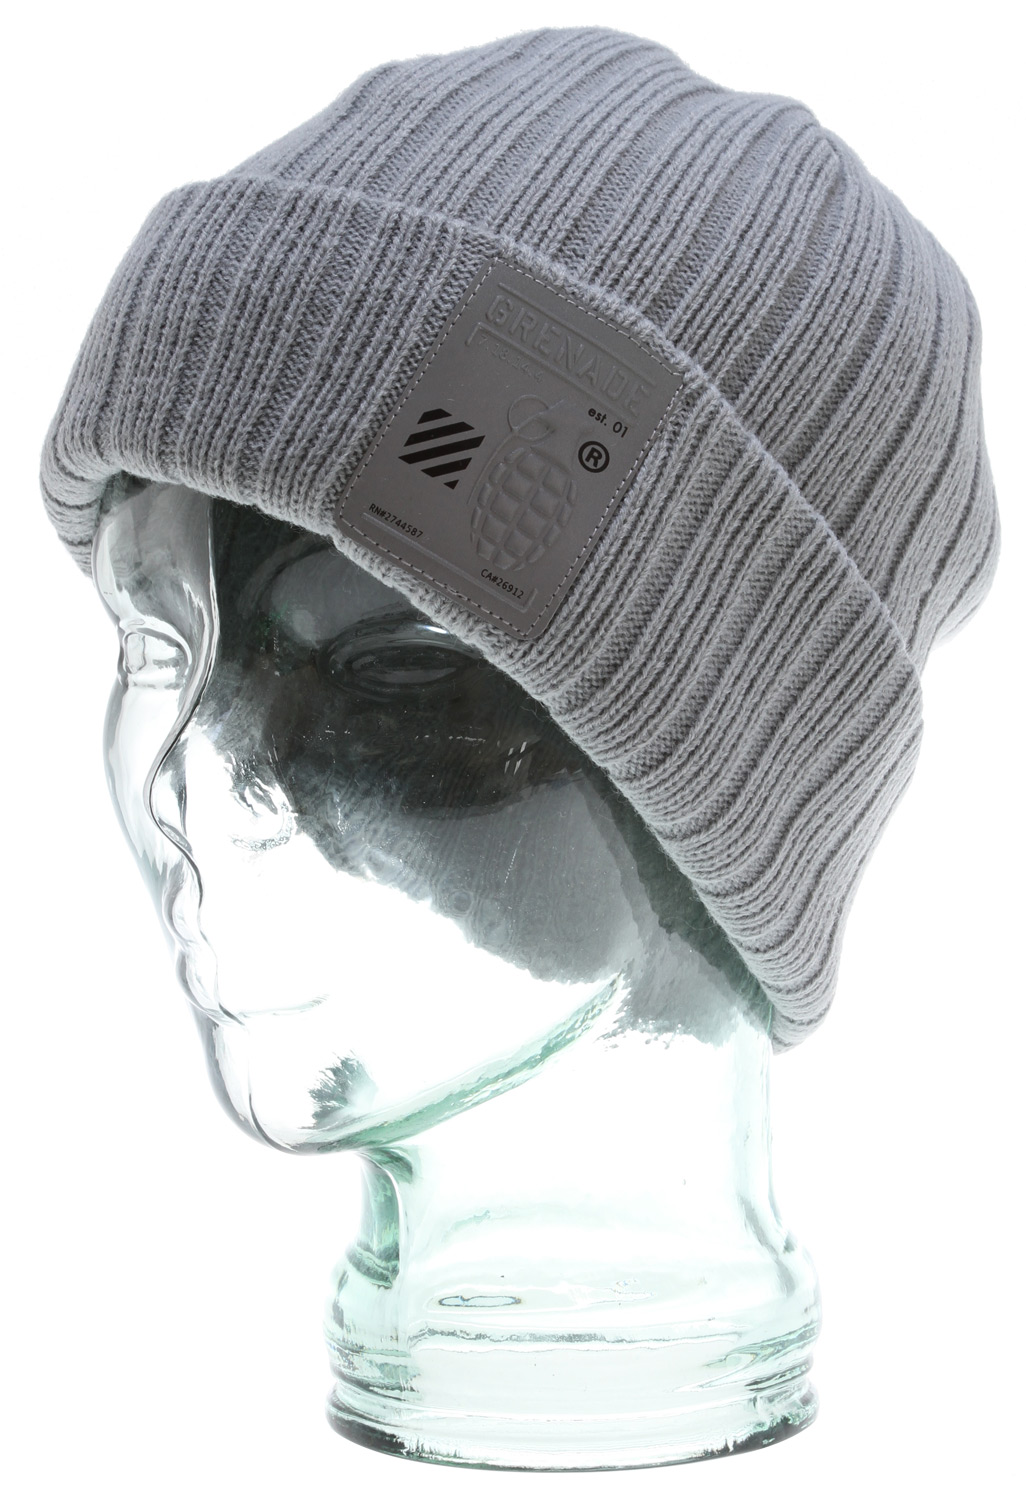 Key Features of the Grenade Flip Up Beanie : 100% Acrylic Reflective logo patch - $7.95